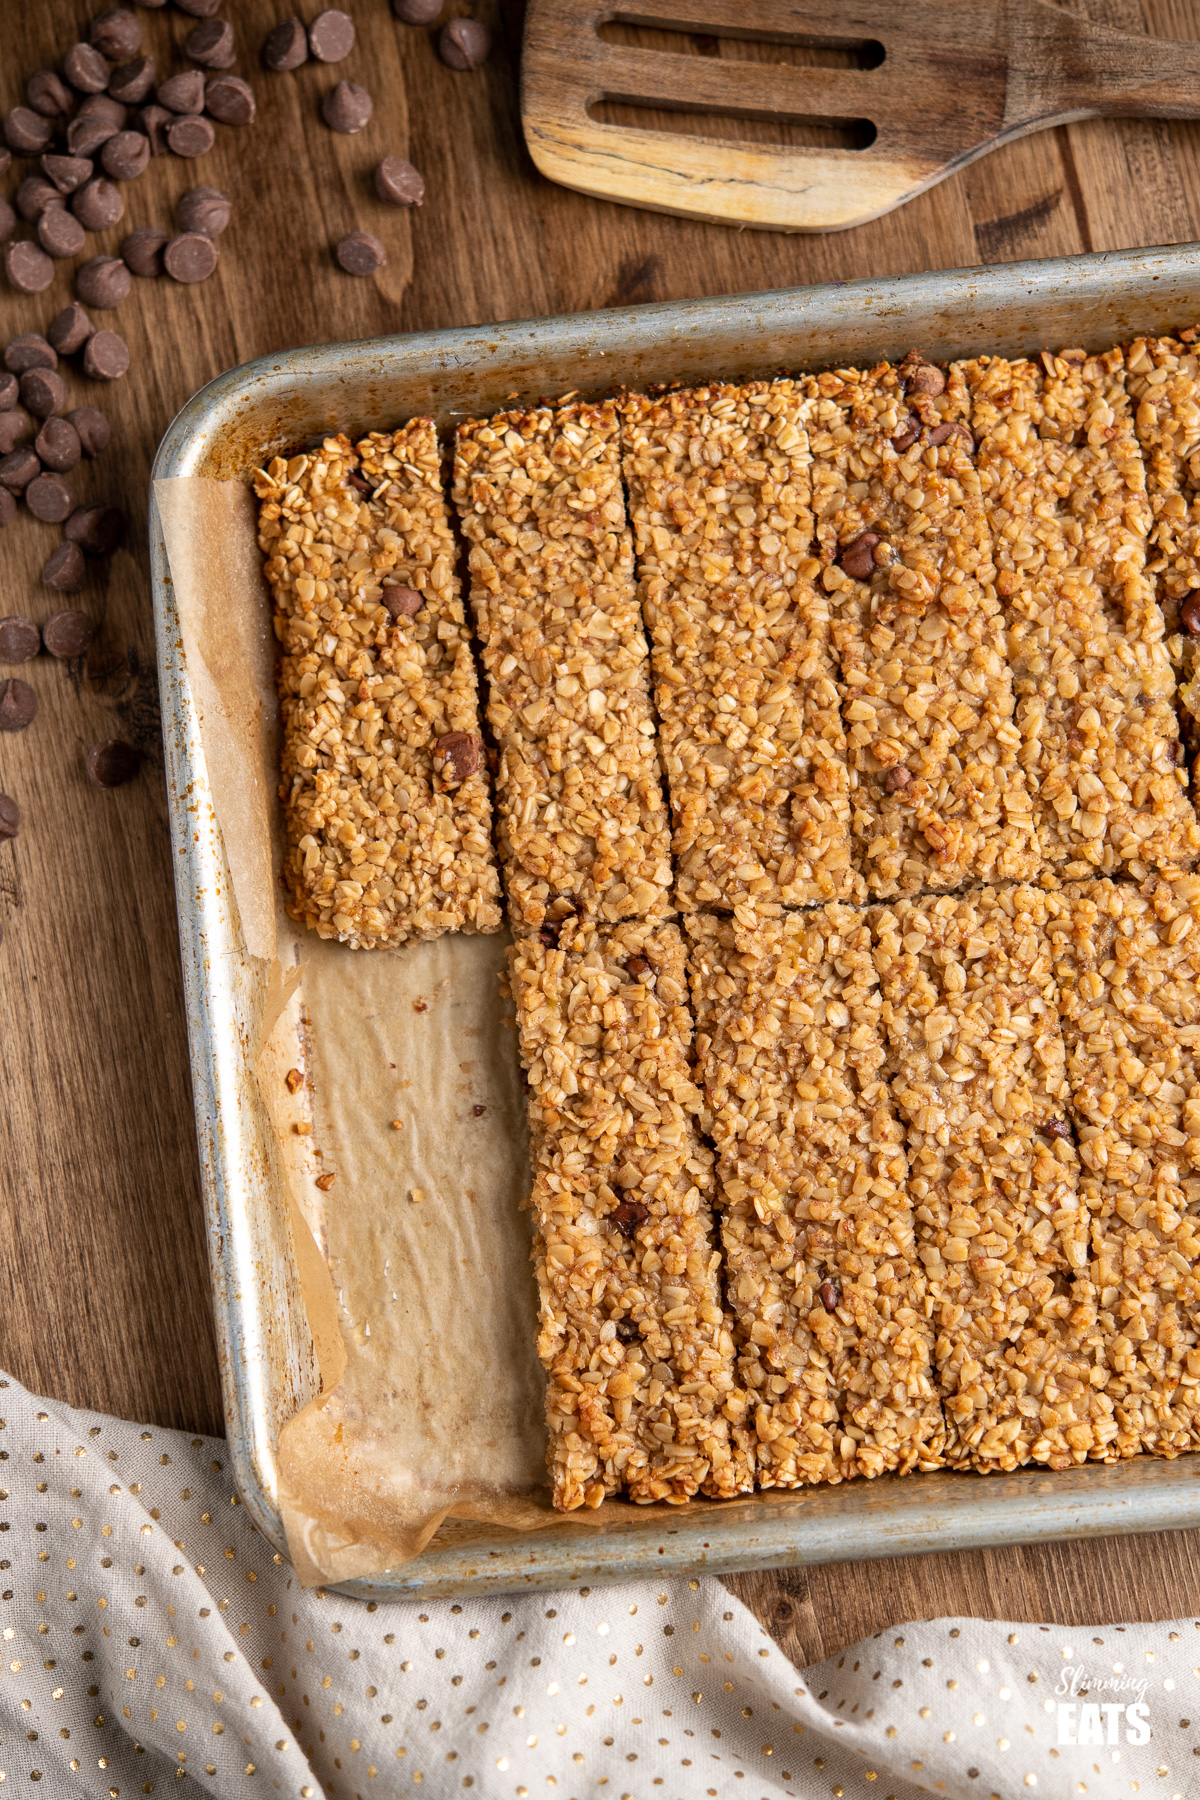 close up of Healthy Chocolate Chip Banana Granola Bars on a baking tray  with scattered chocolate chips and wooden spatula above